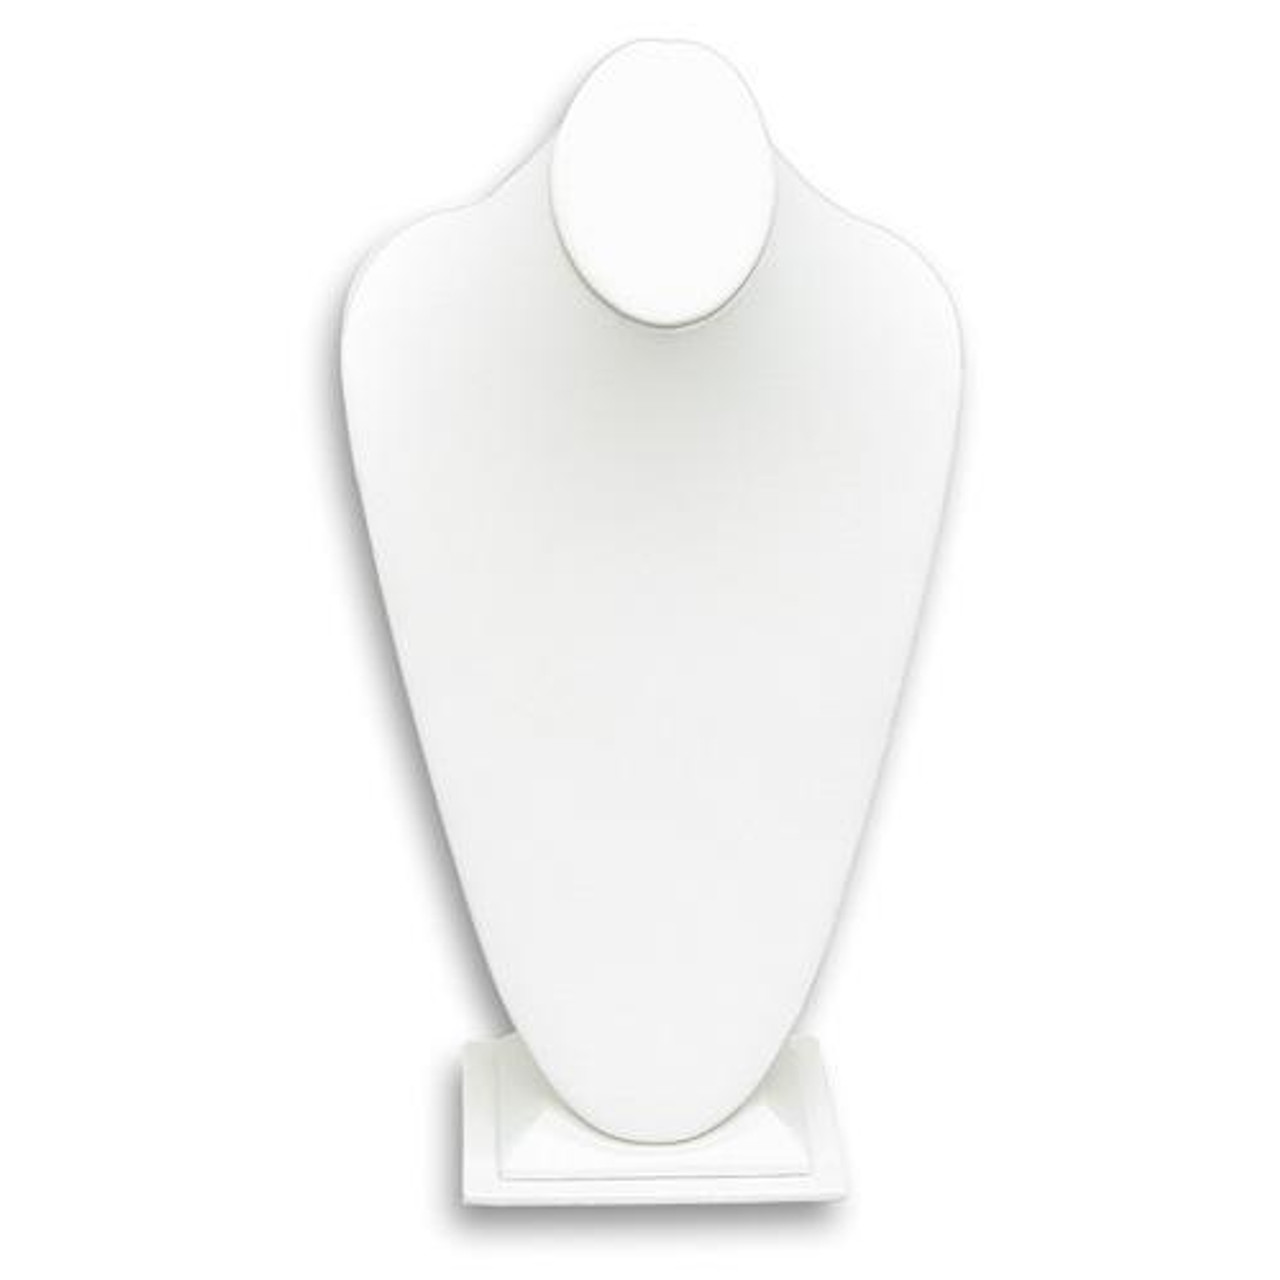 Wholesale 5 White Necklace Stands Jewellery Holder Shop Display Bust